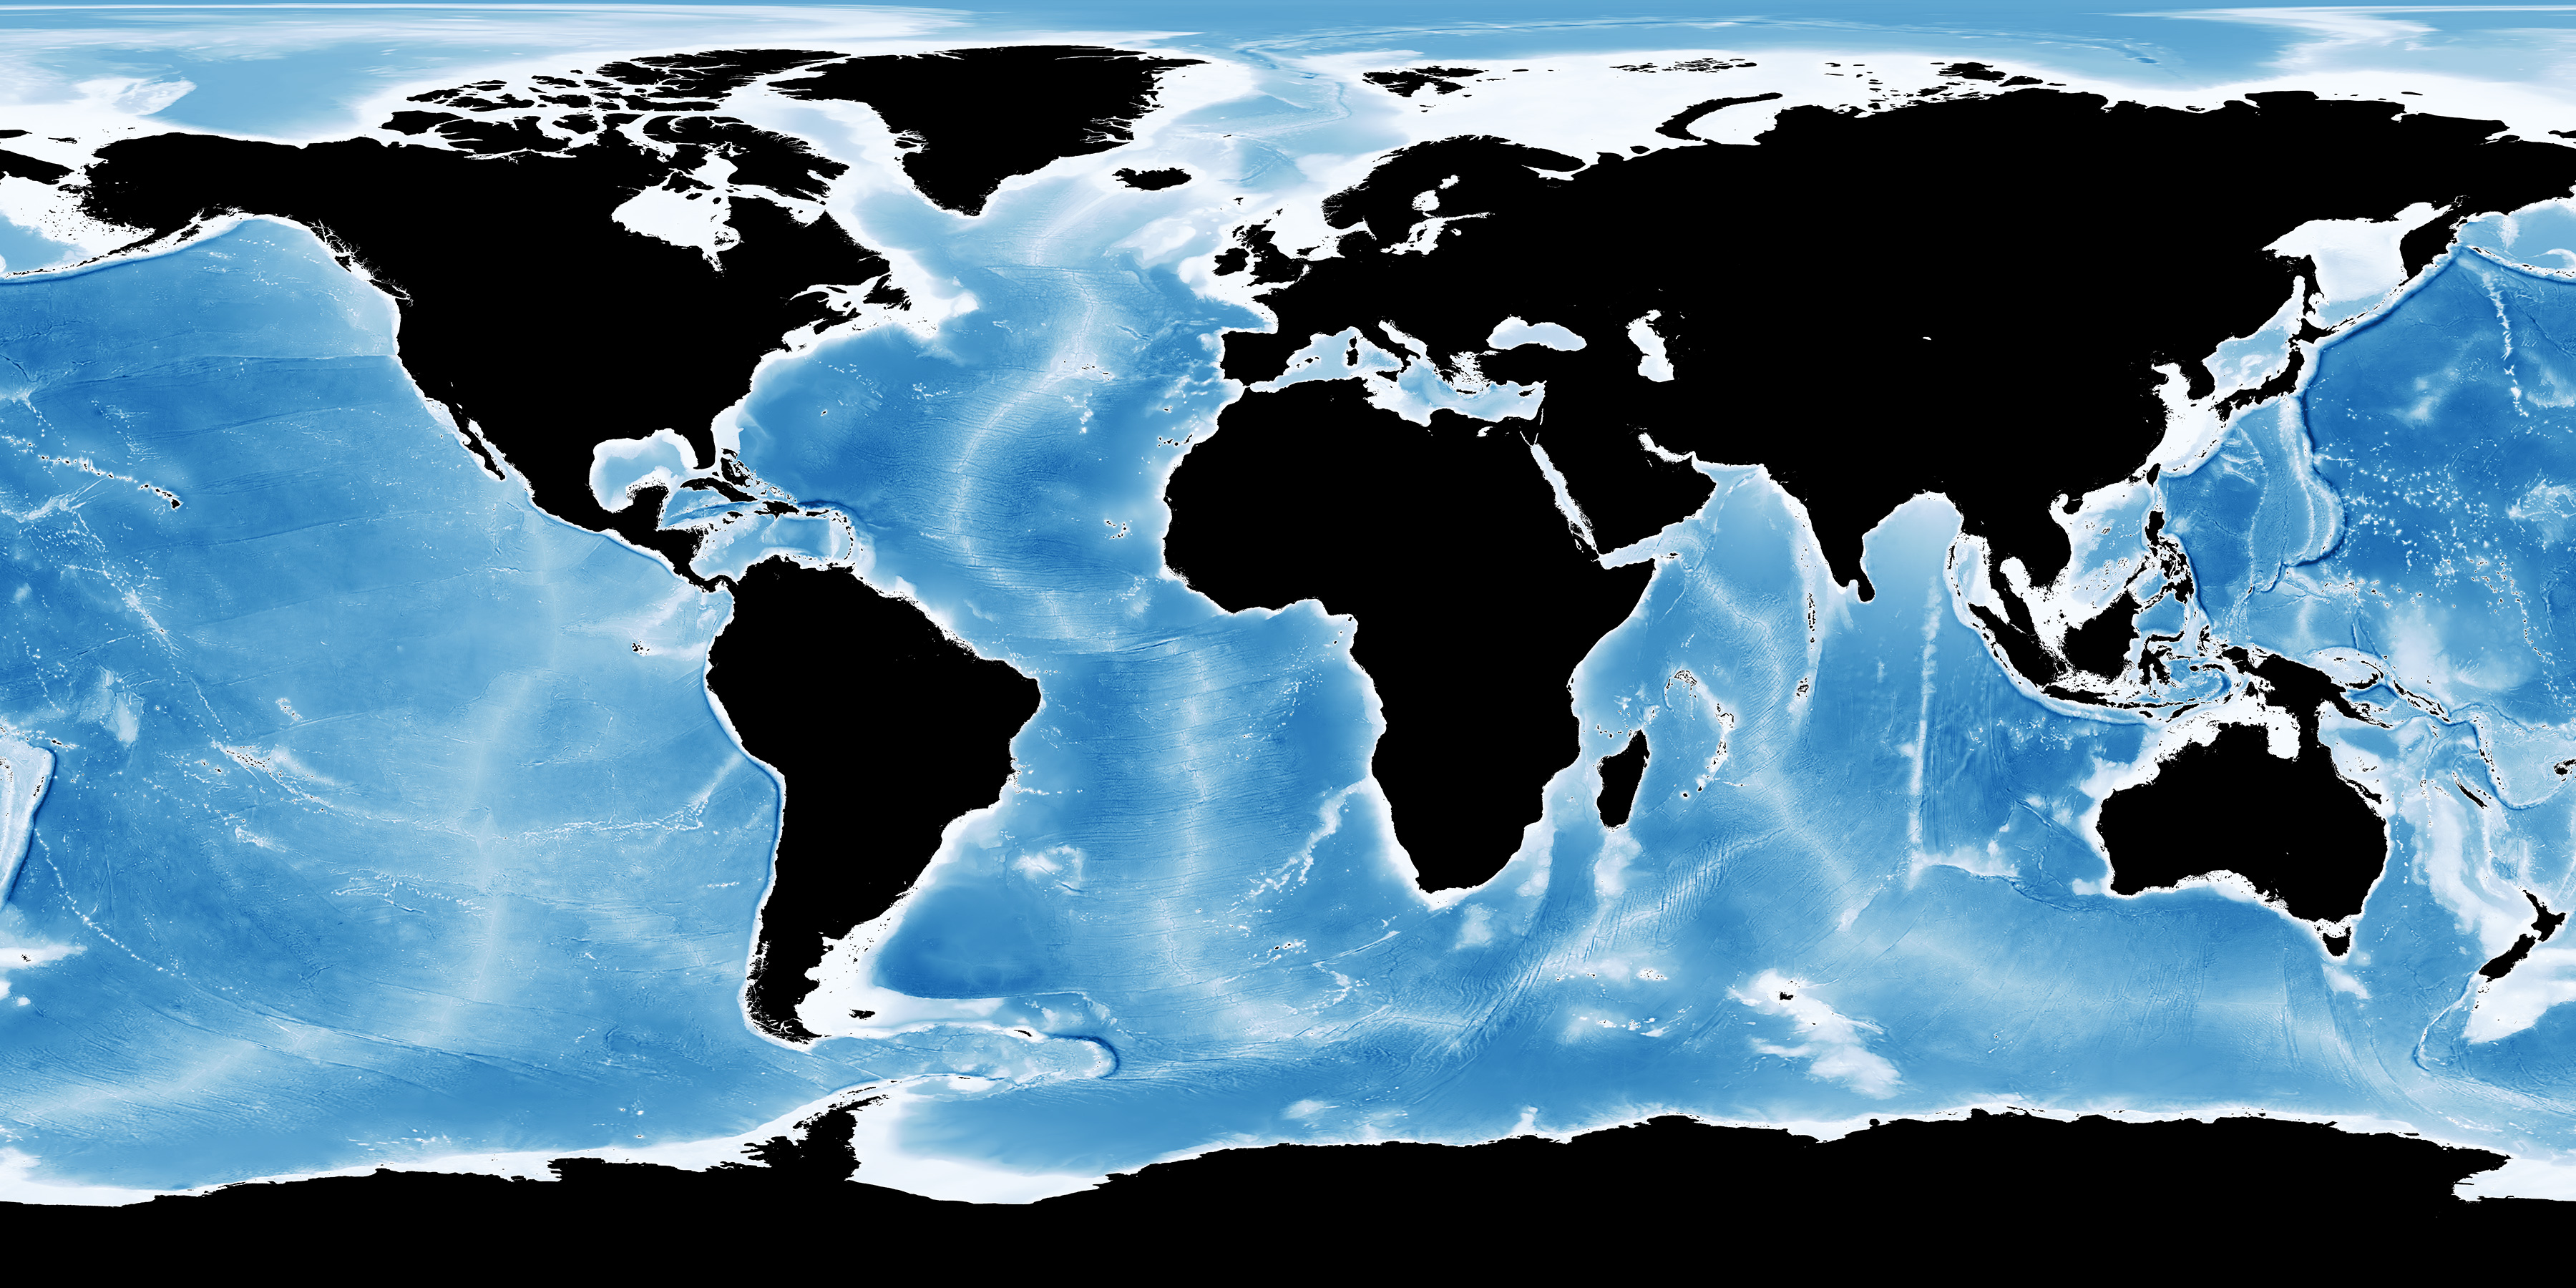 Map showing global ocean water depth.